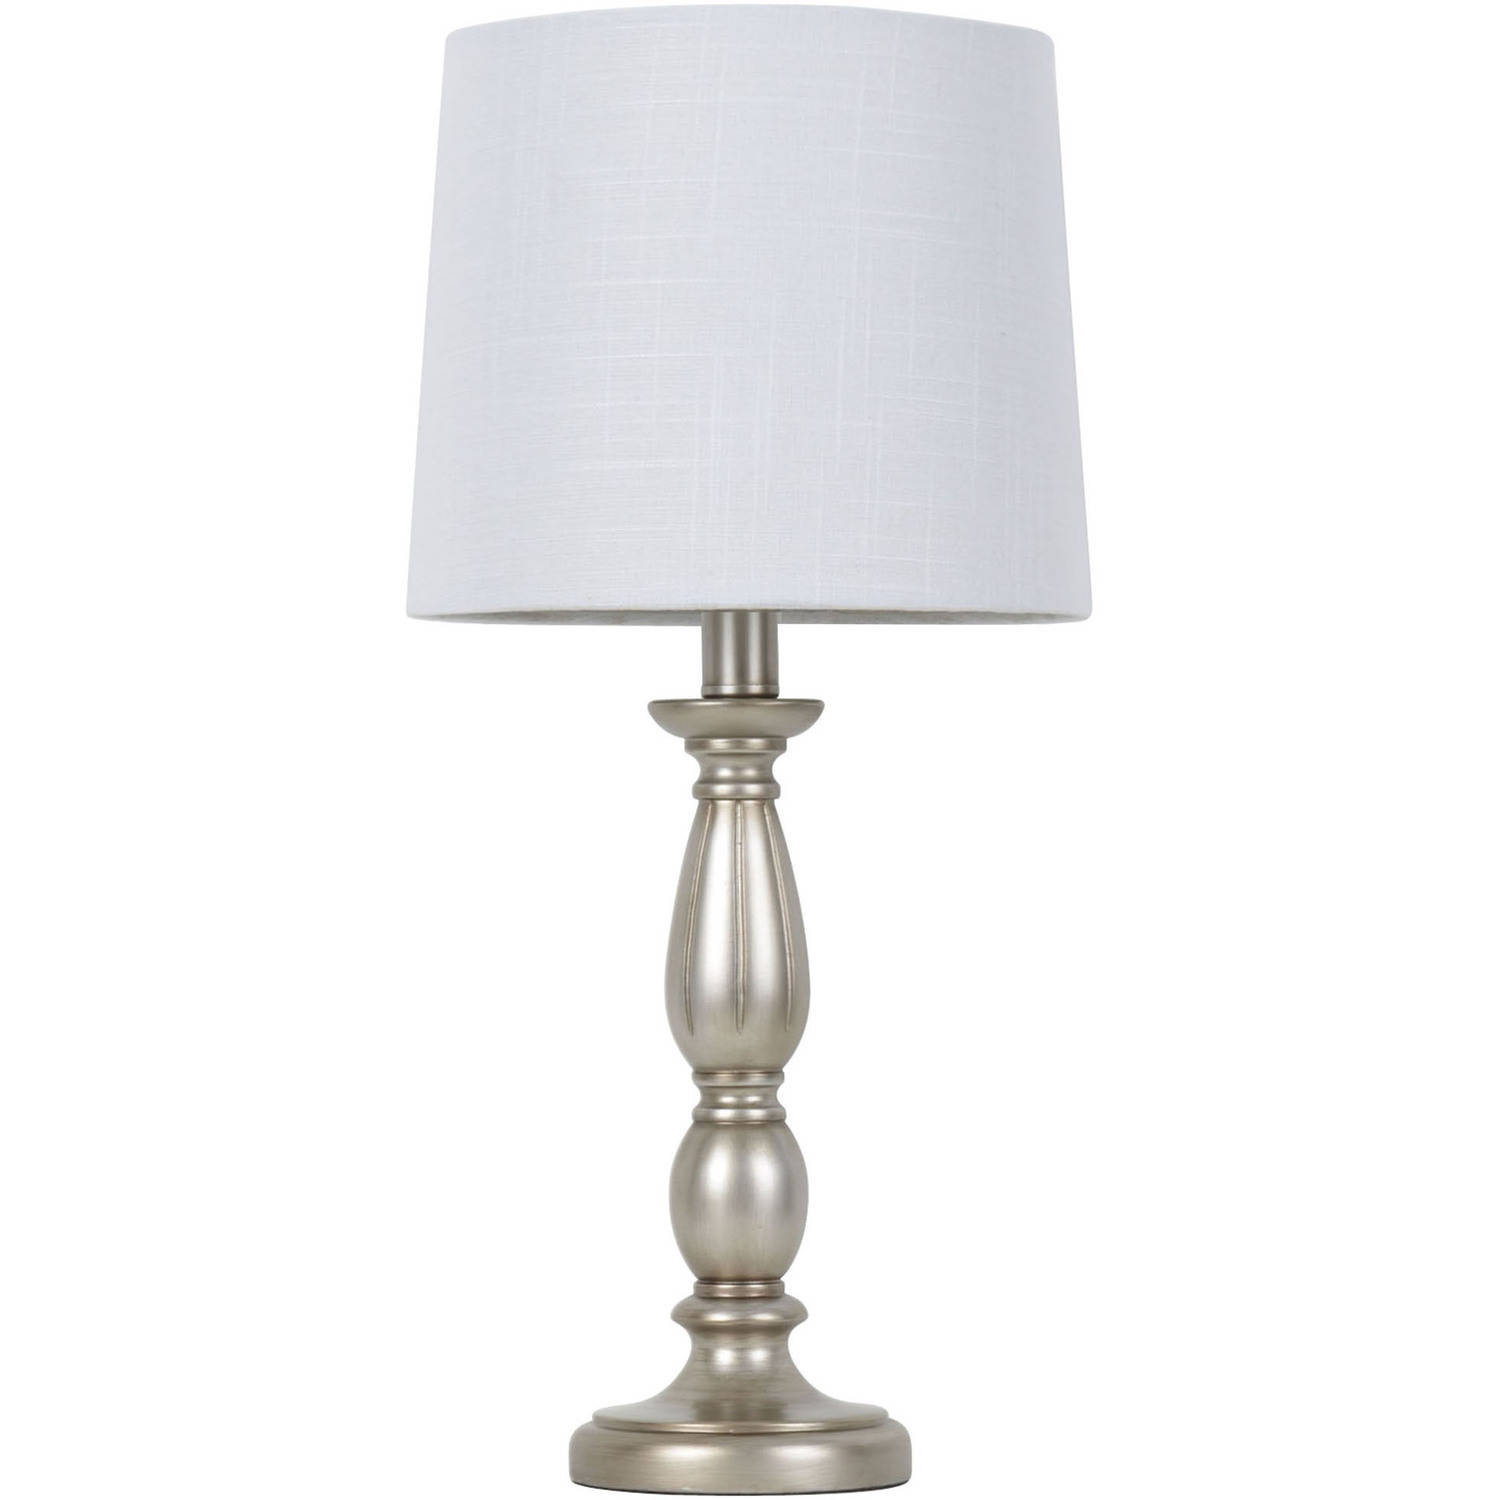 Bedside Lamps For Reading 10 Key Tips For Choosing The Ideal Bedside Table Reading